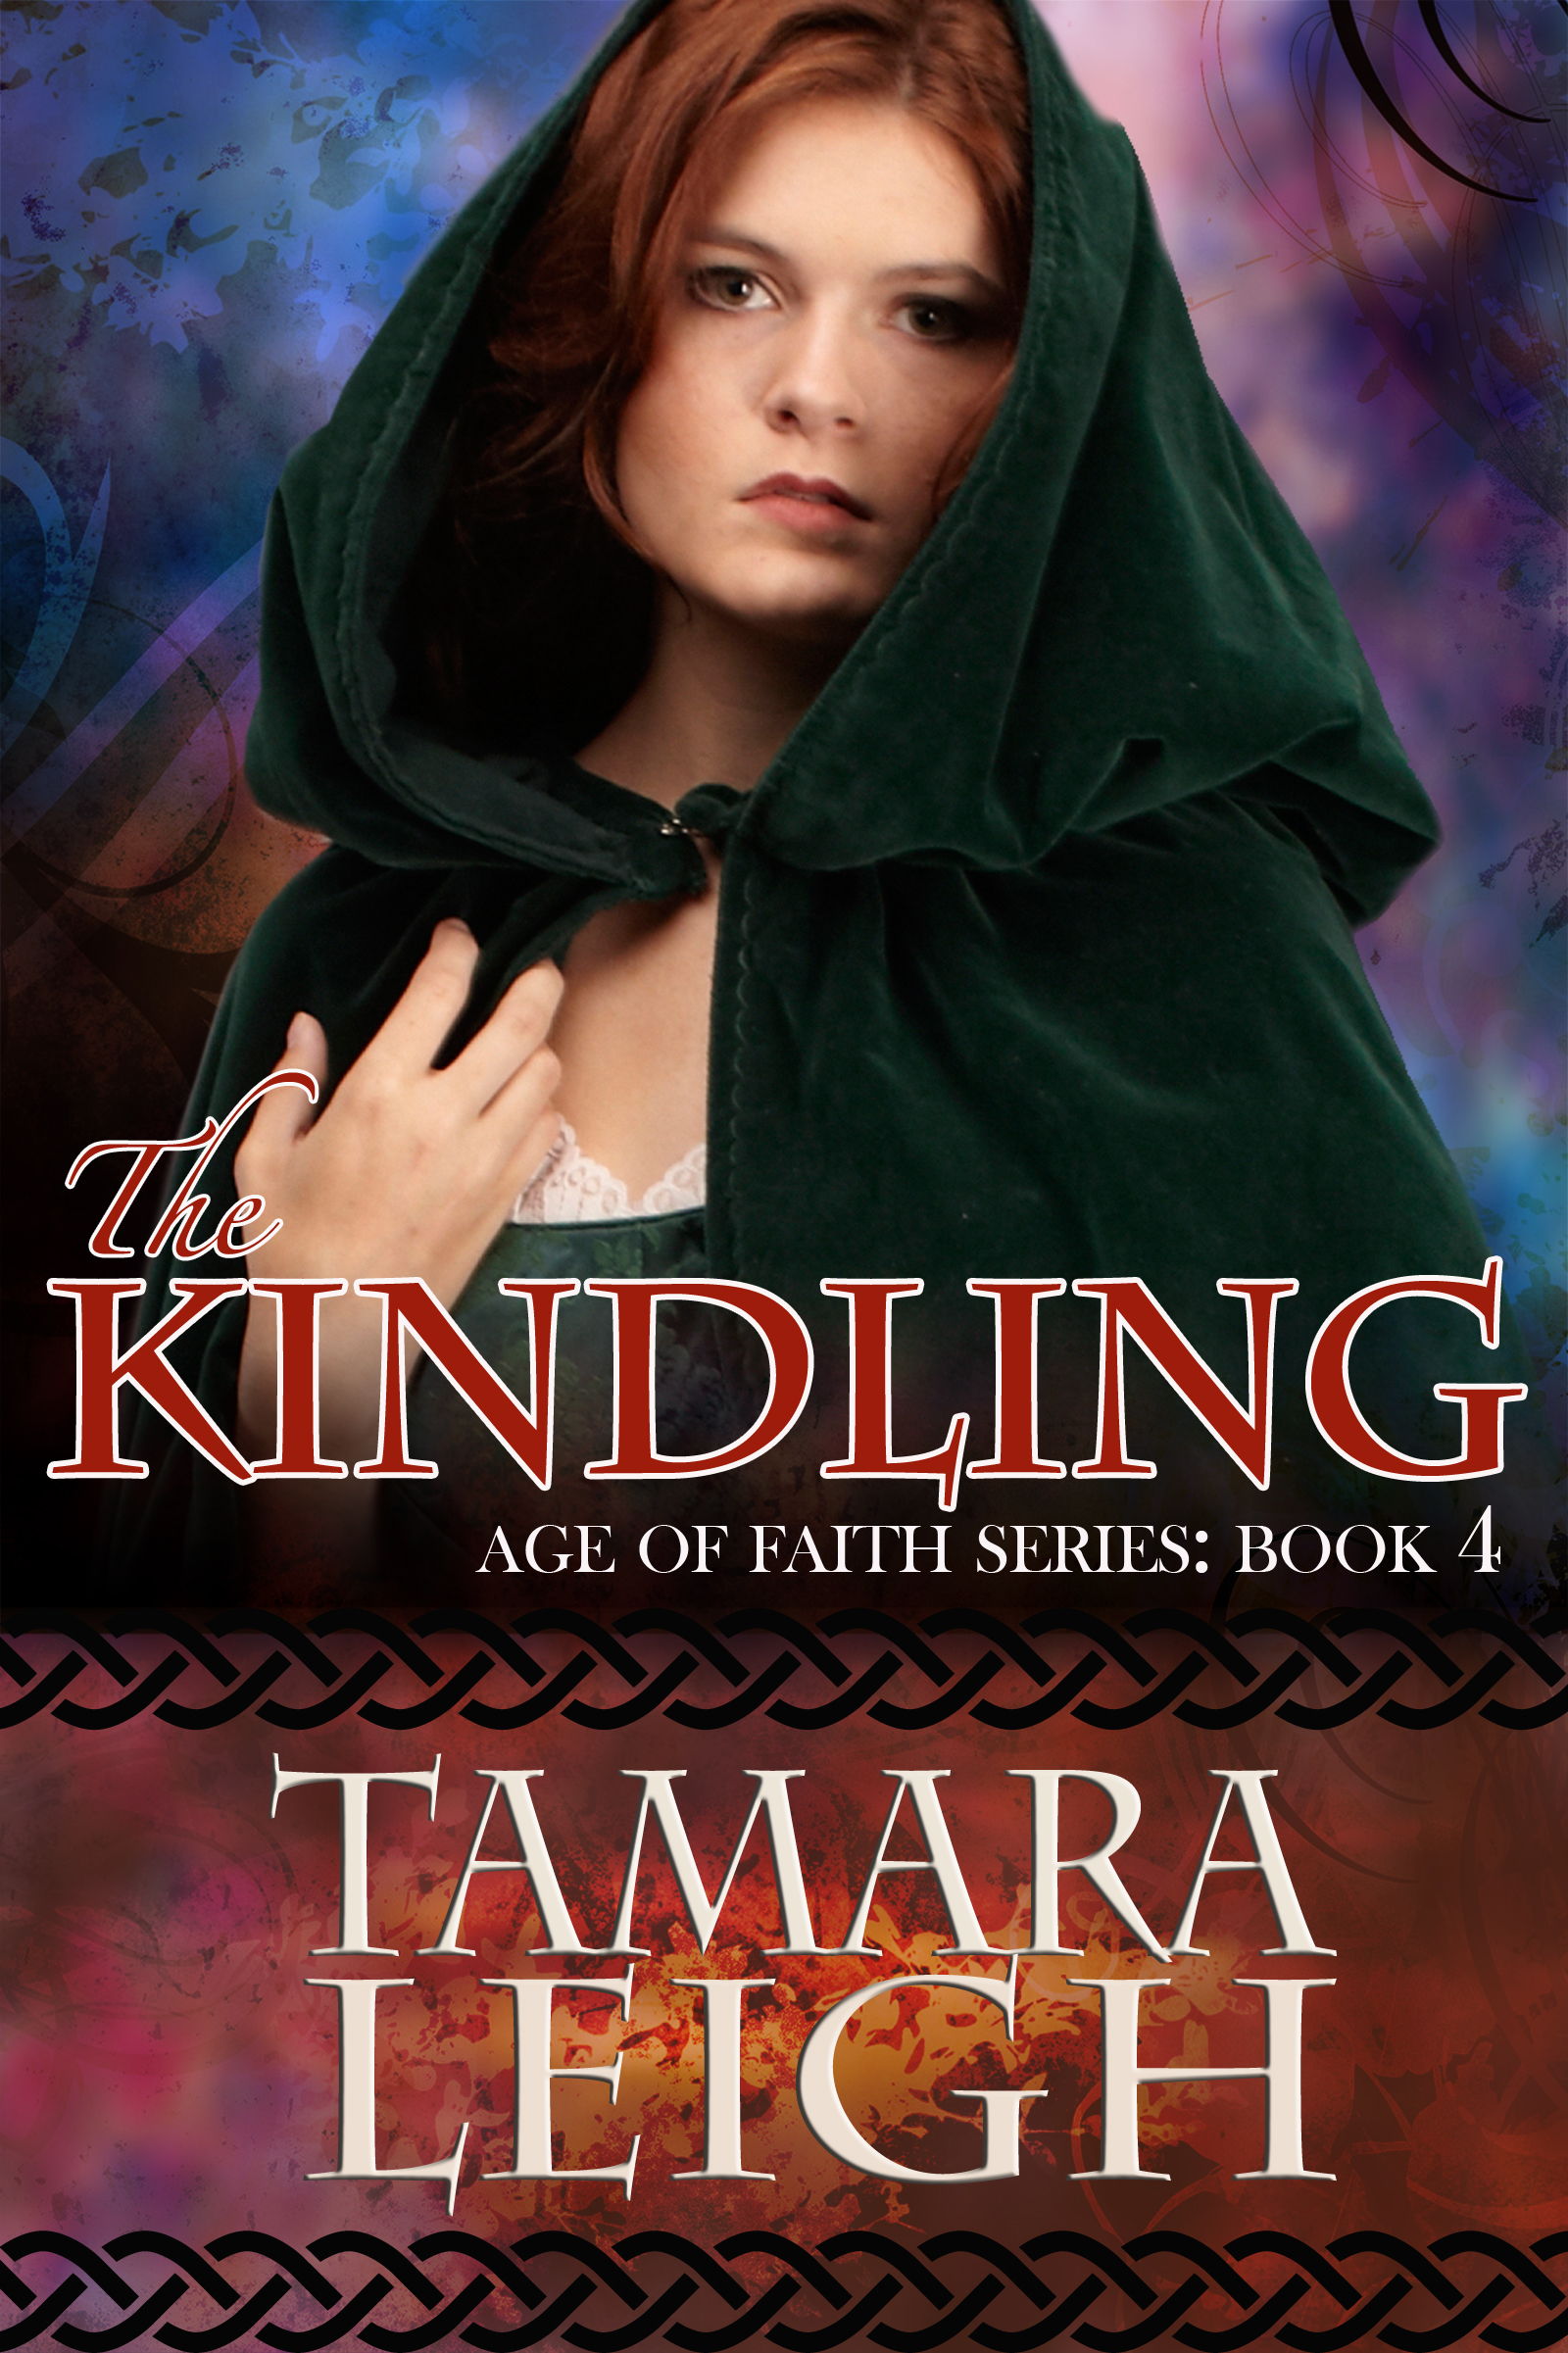 The Kindling By Tamara Leigh With Giveaways